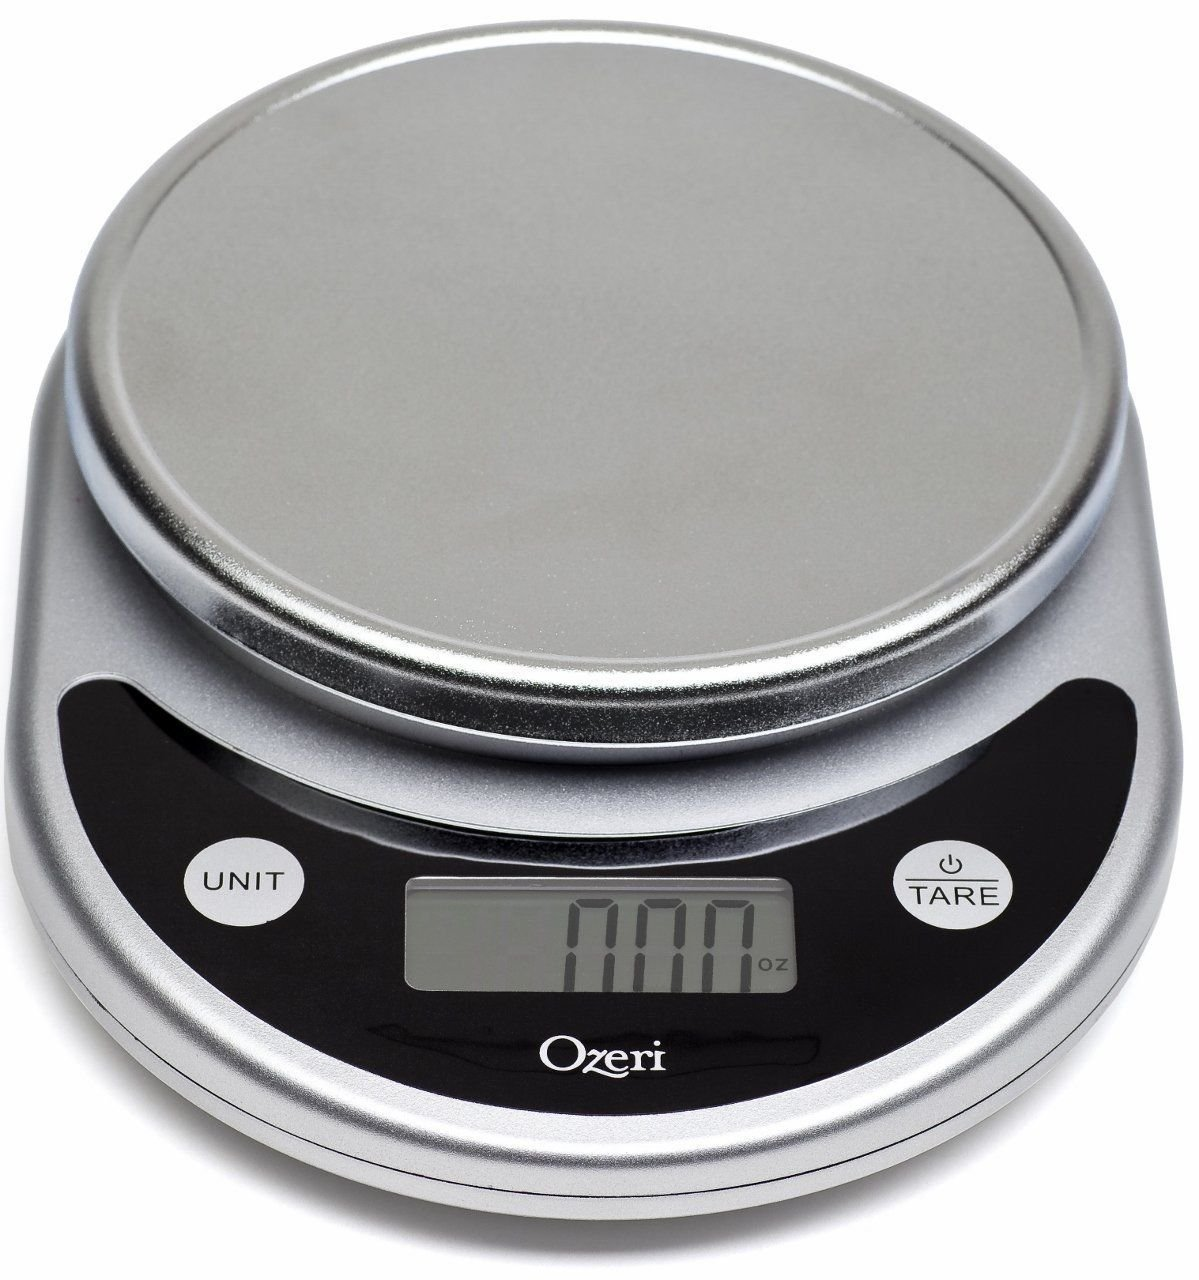 Ozeri ZK14-S  Pronto Digital Multifunction Kitchen and Food Scale, Elegant Black